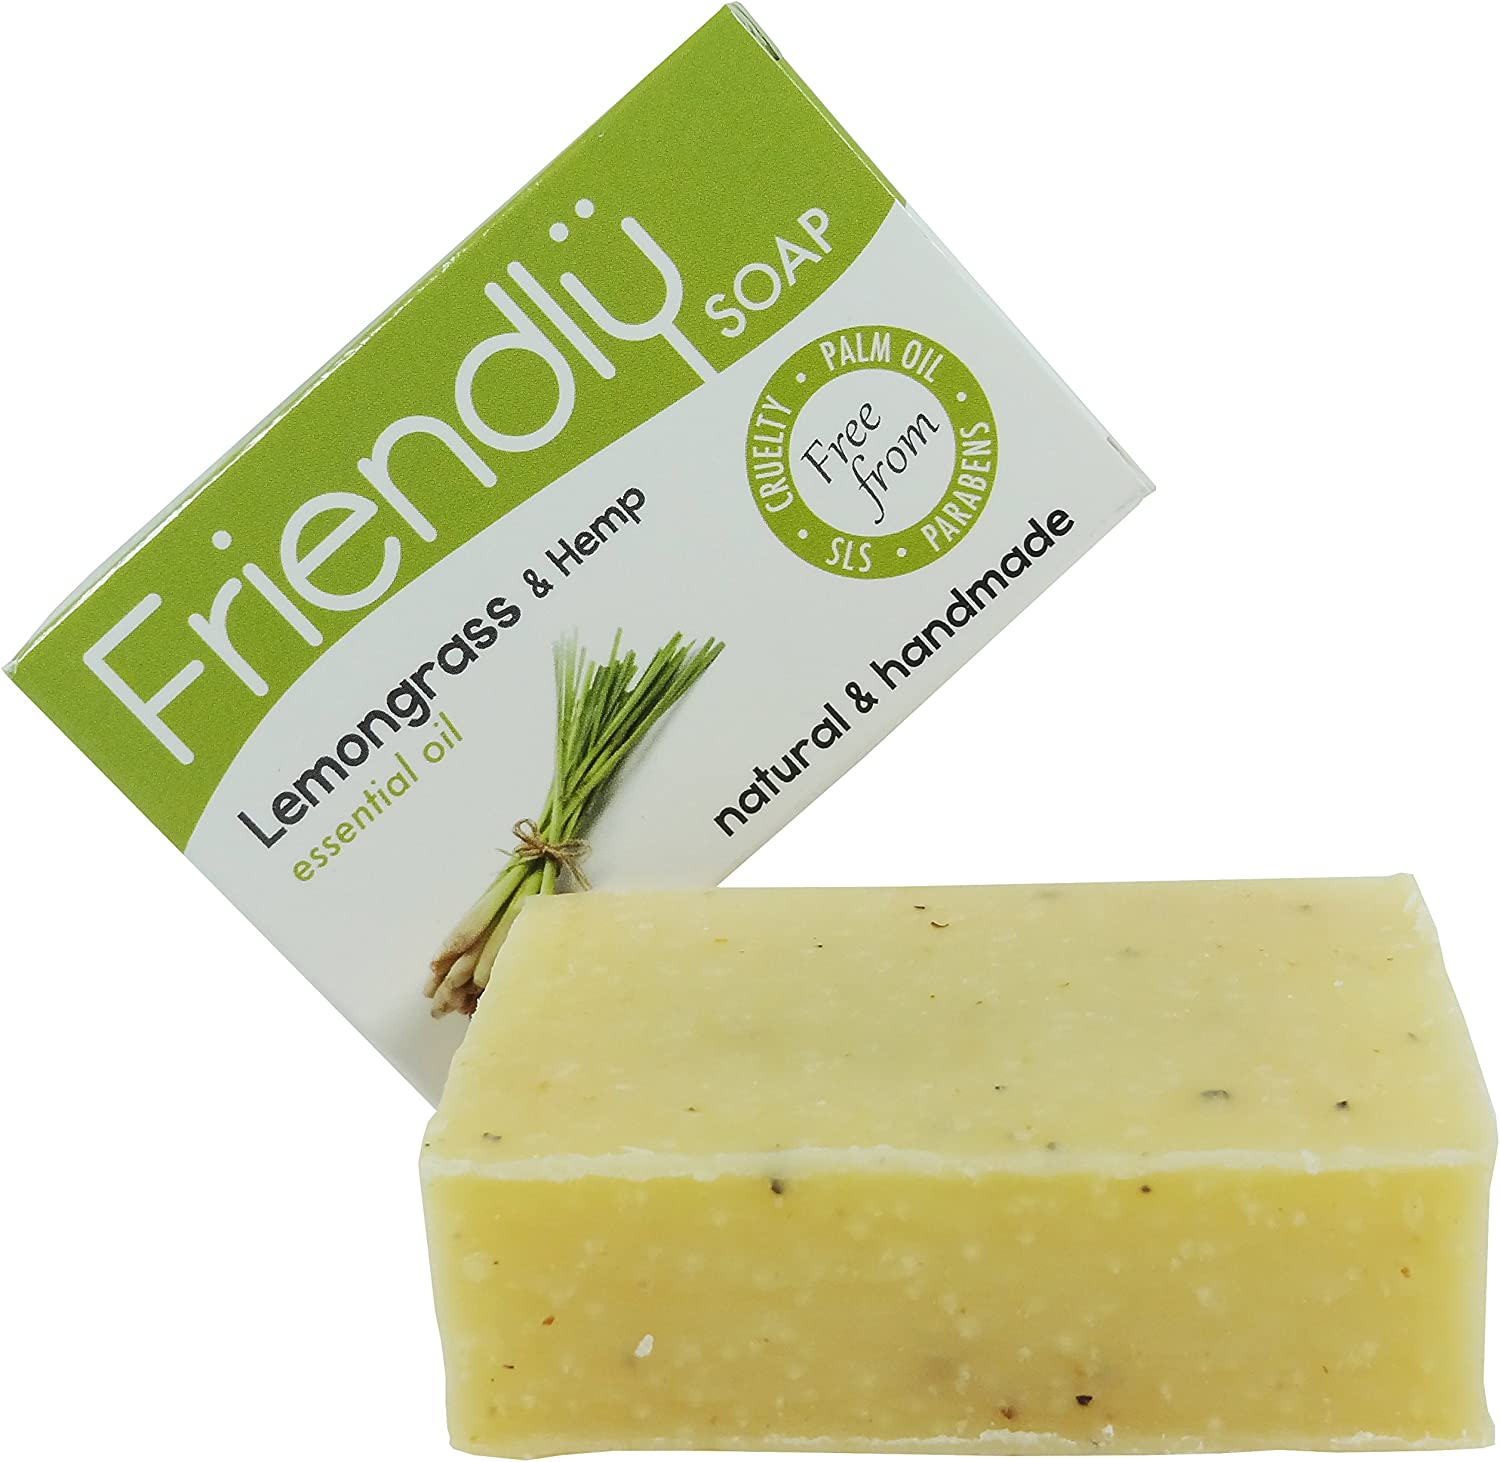 Friendly Soap Lemongrass & Hemp x 2 (Pack of 2)